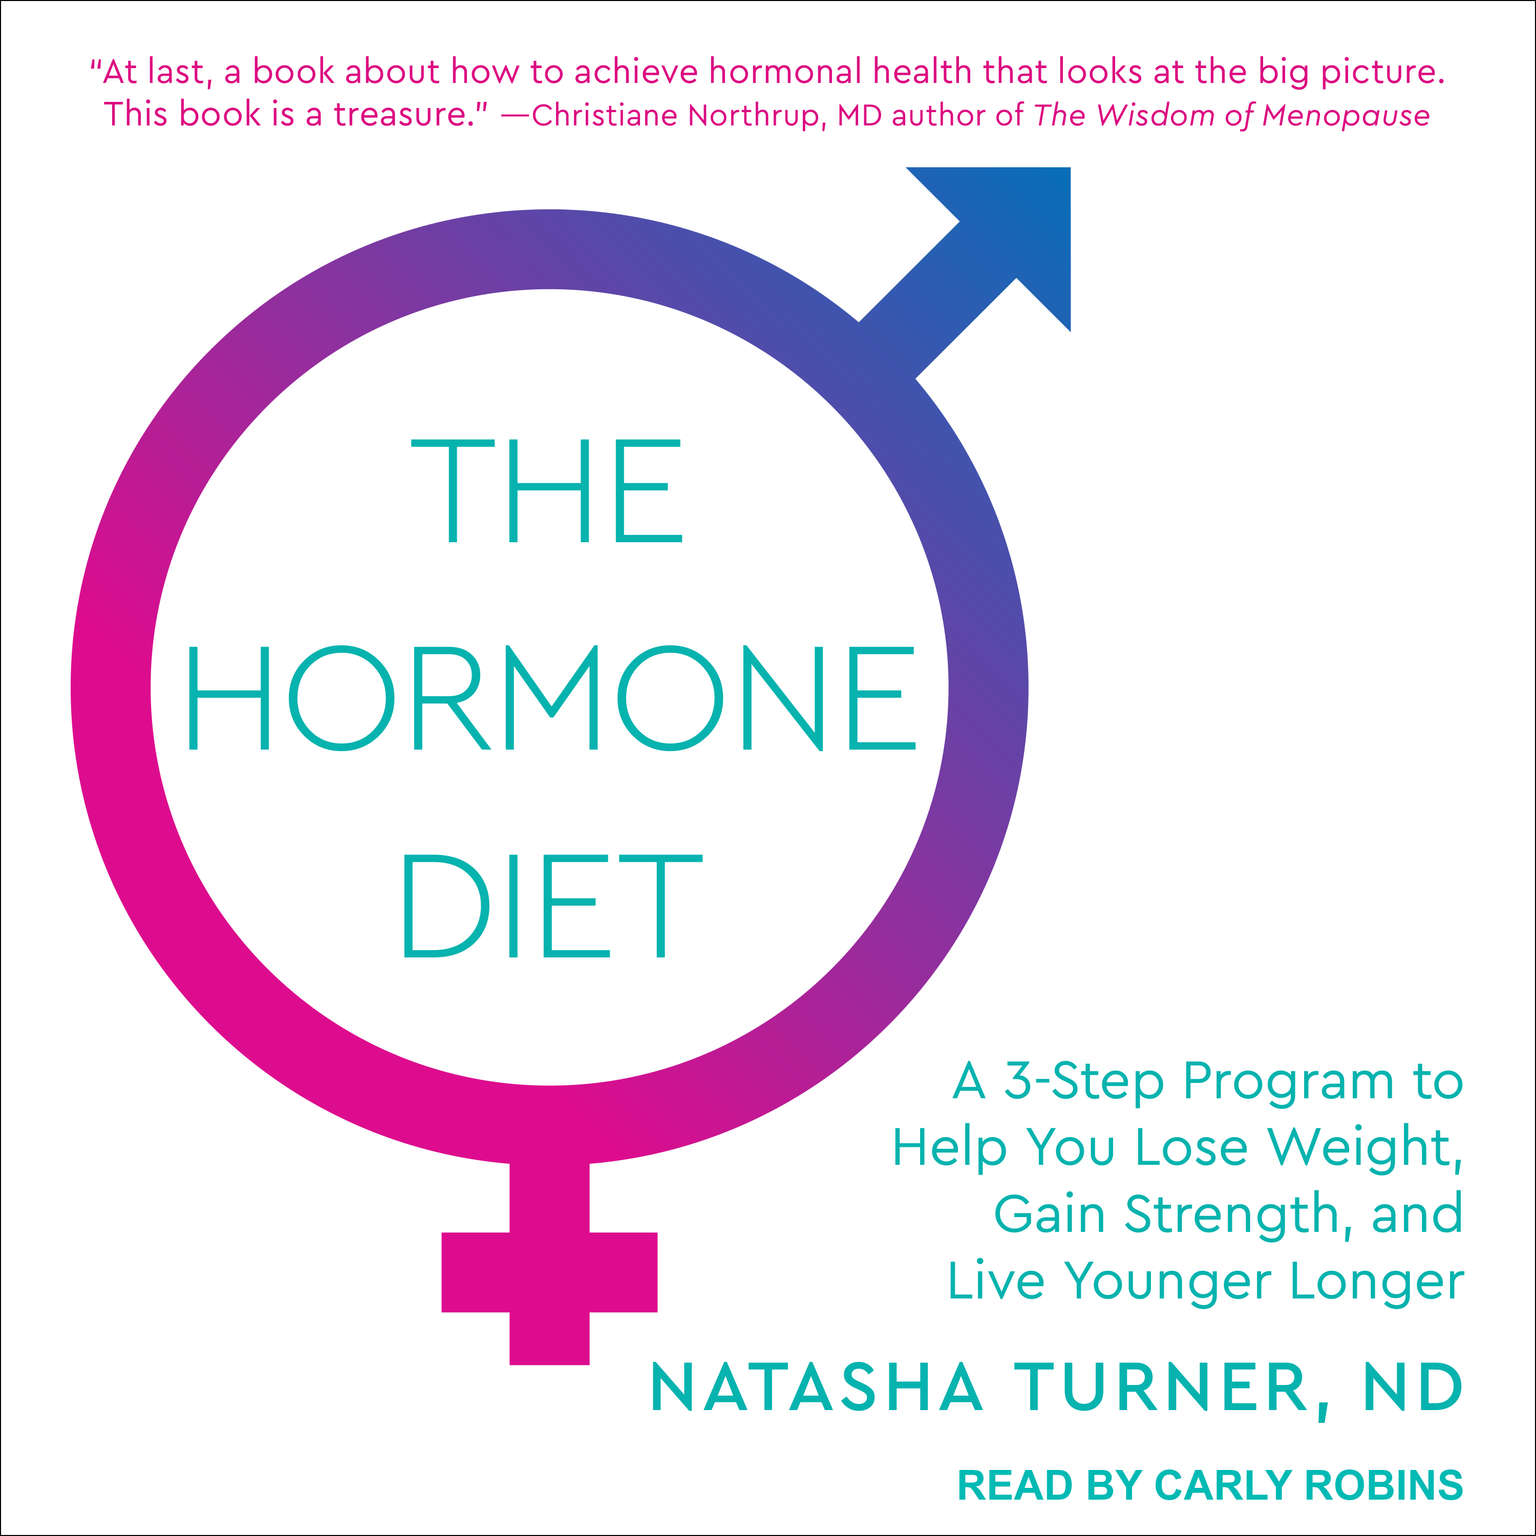 The Hormone Diet: A 3-step Program to Help You Lose Weight, Gain Strength, and Live Younger Longer Audiobook, by Natasha Turner